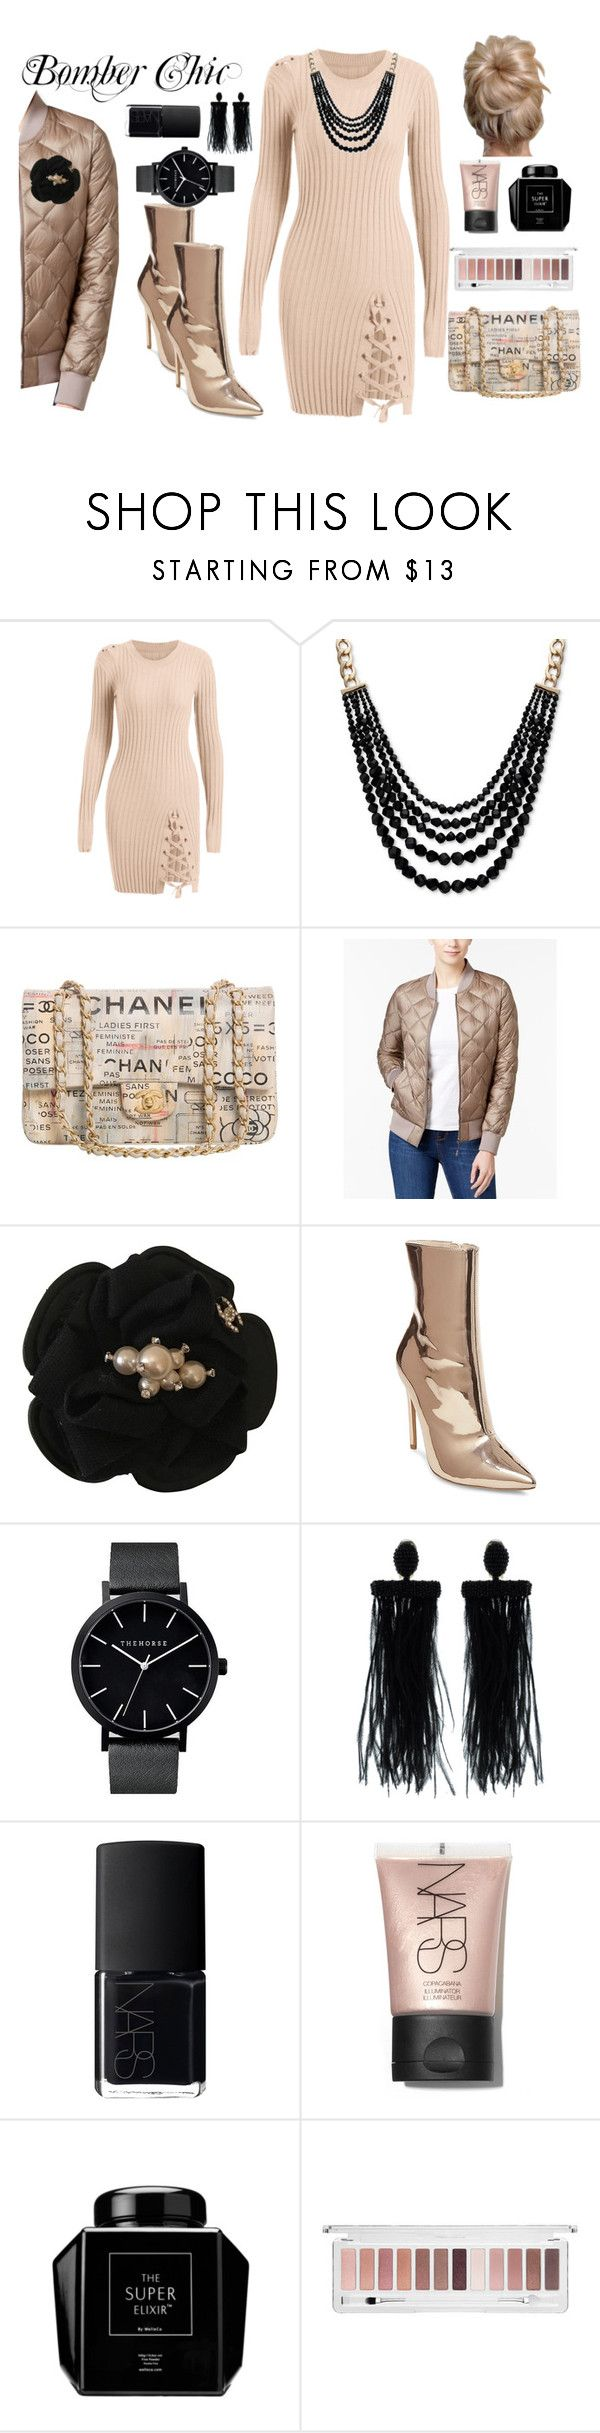 """Bomber Chic"" by wildorchid21-1 ❤ liked on Polyvore featuring Anne Klein, Chanel, 32 Degrees, Steve Madden, Oscar de la Renta and NARS Cosmetics"